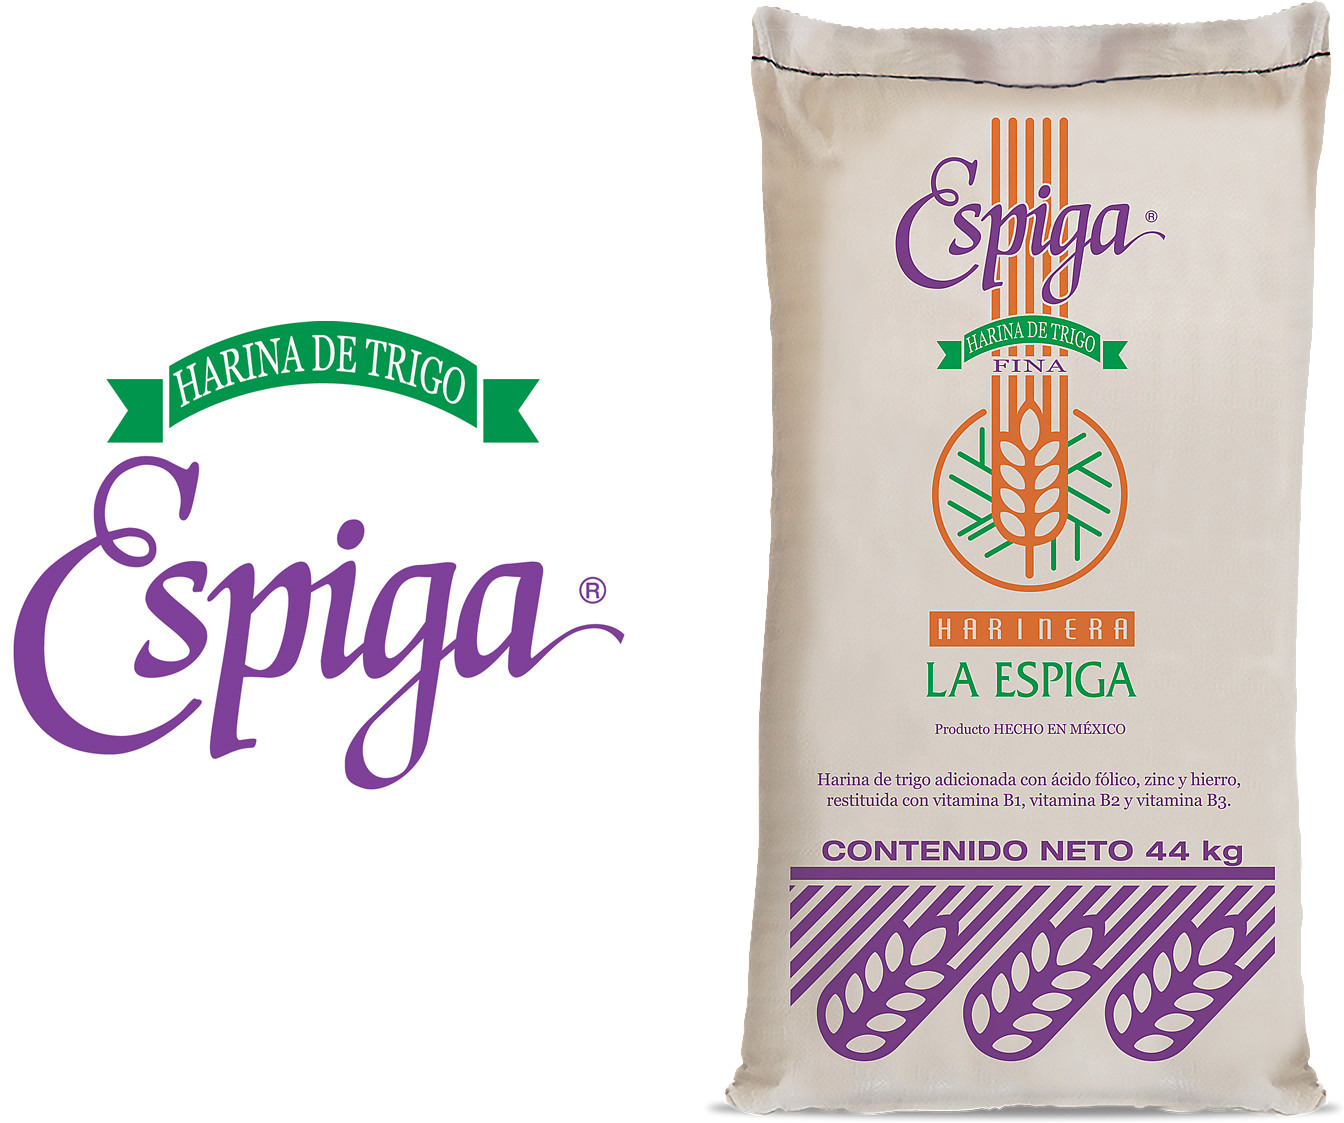 Espiga is the most recognized flour brand in the Mexican market.